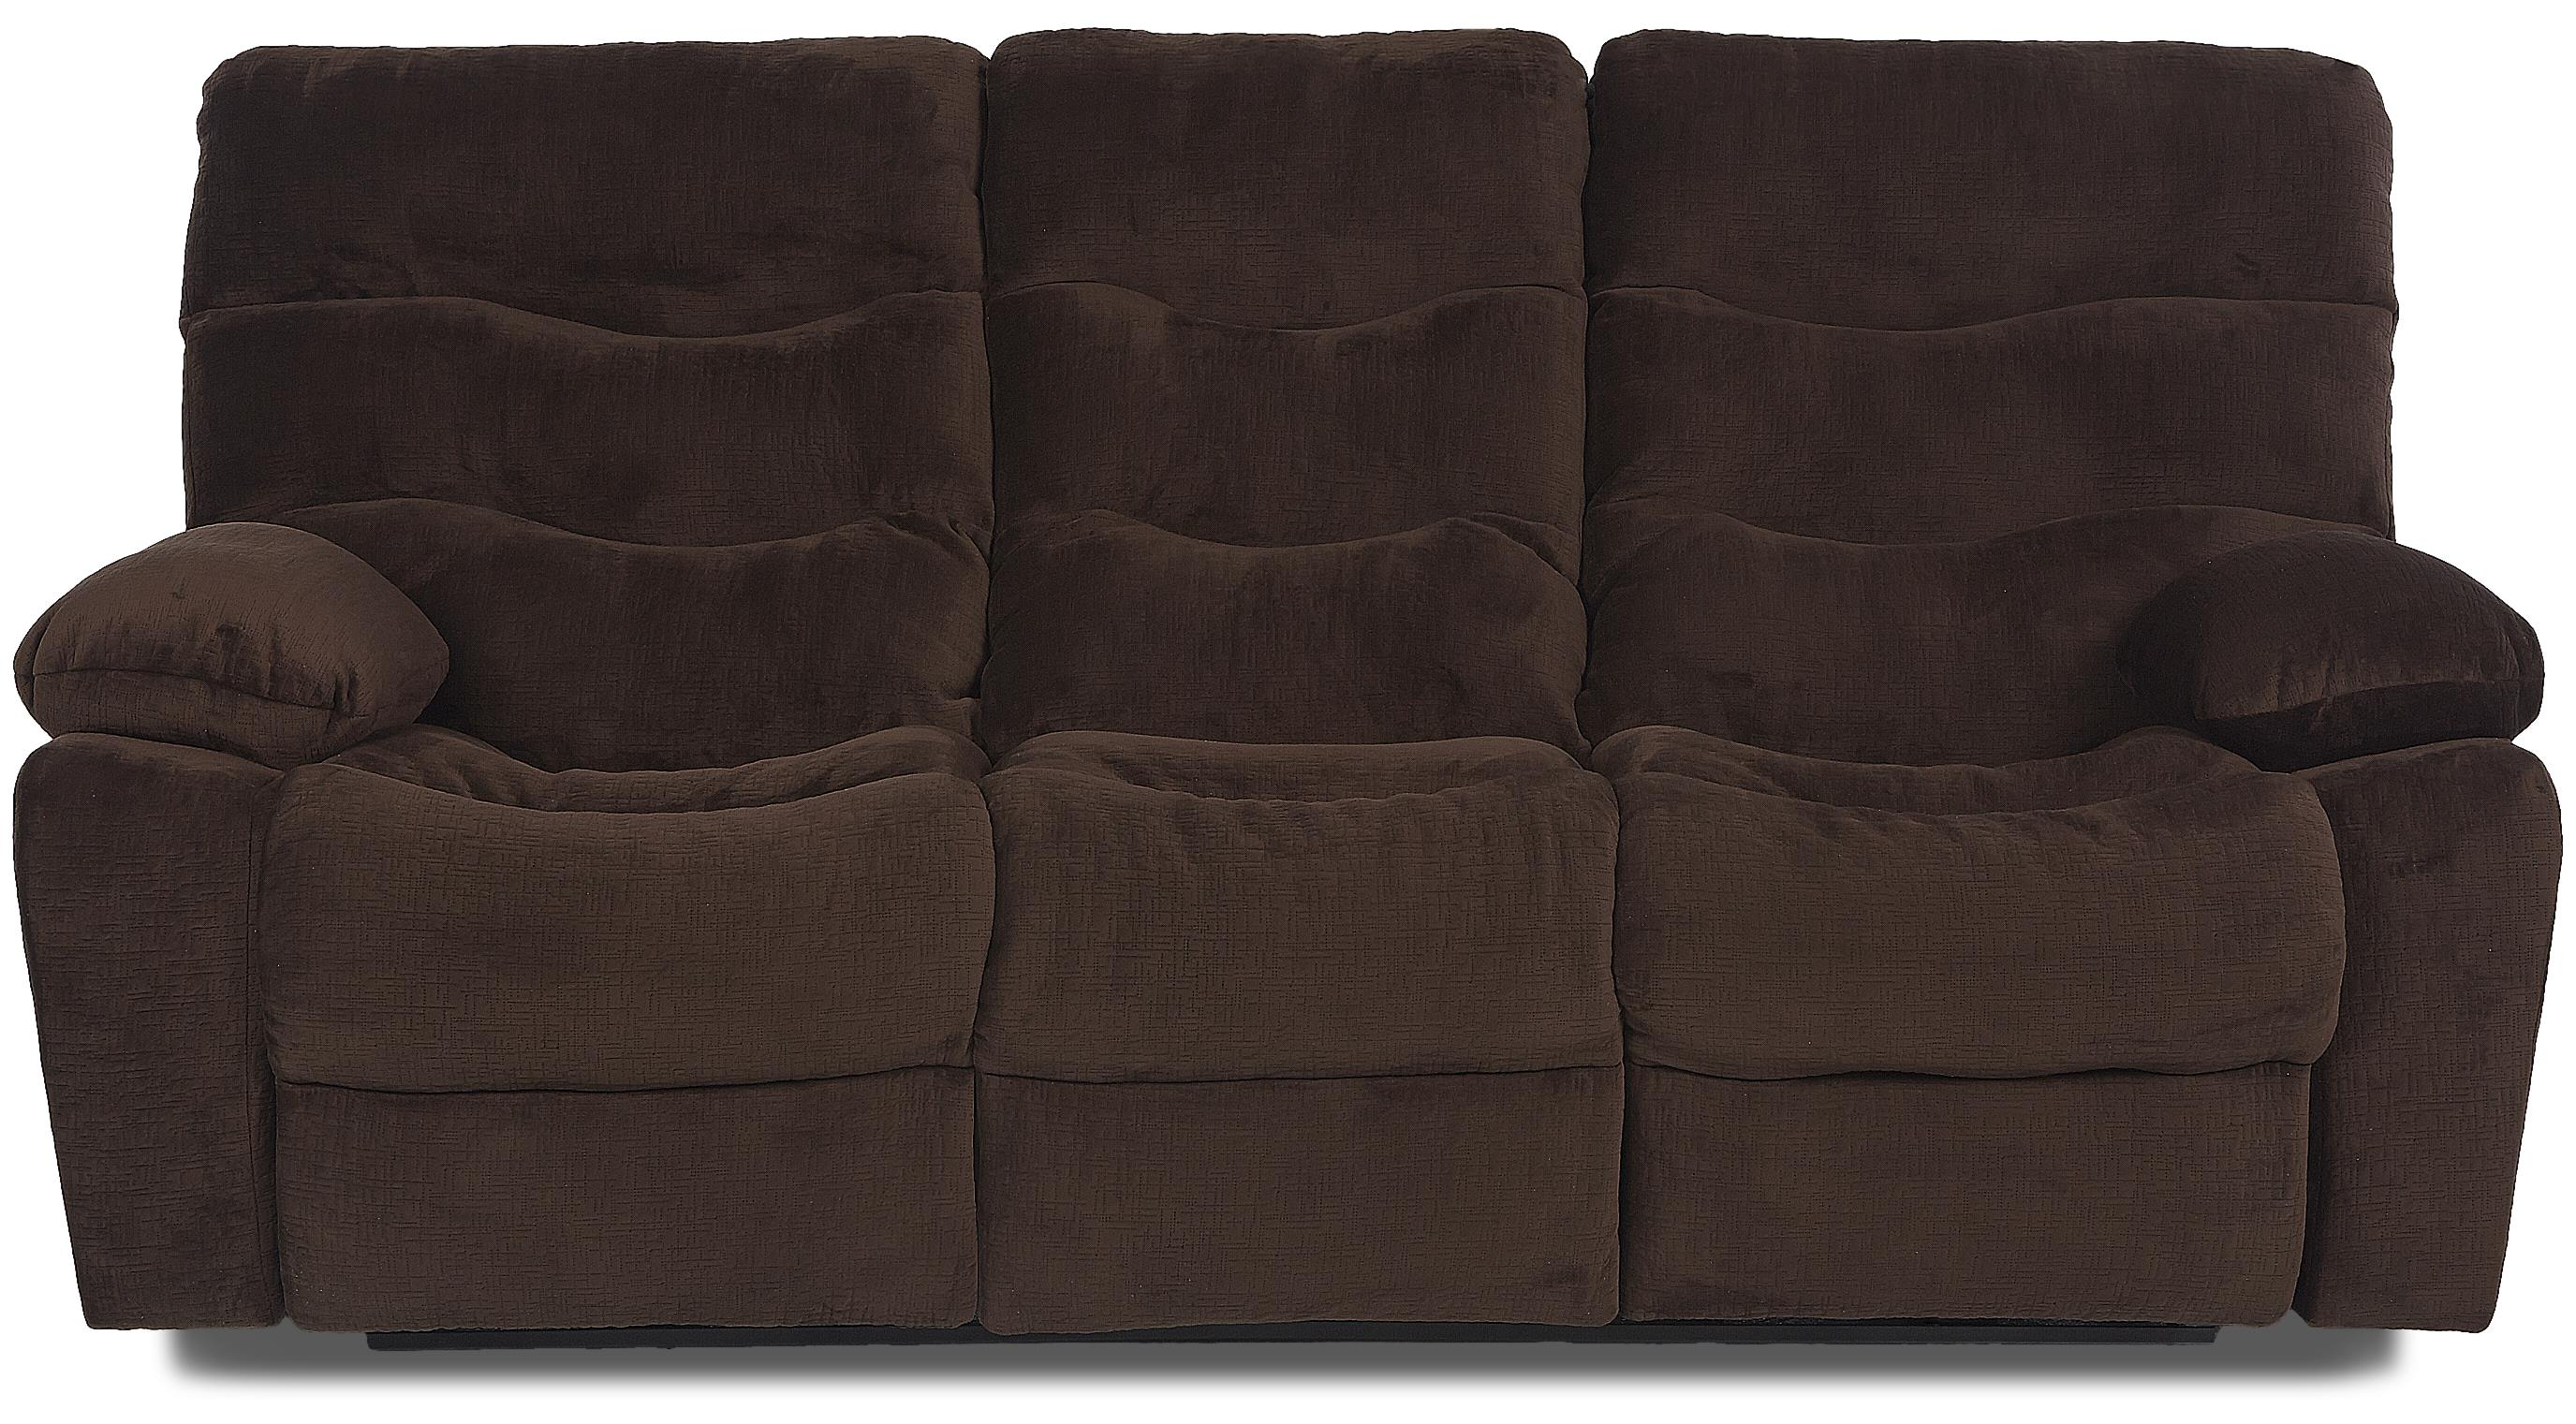 Klaussner Hercules Power Reclining Sofa - Item Number: 27403 PWRS-EtchChocolate